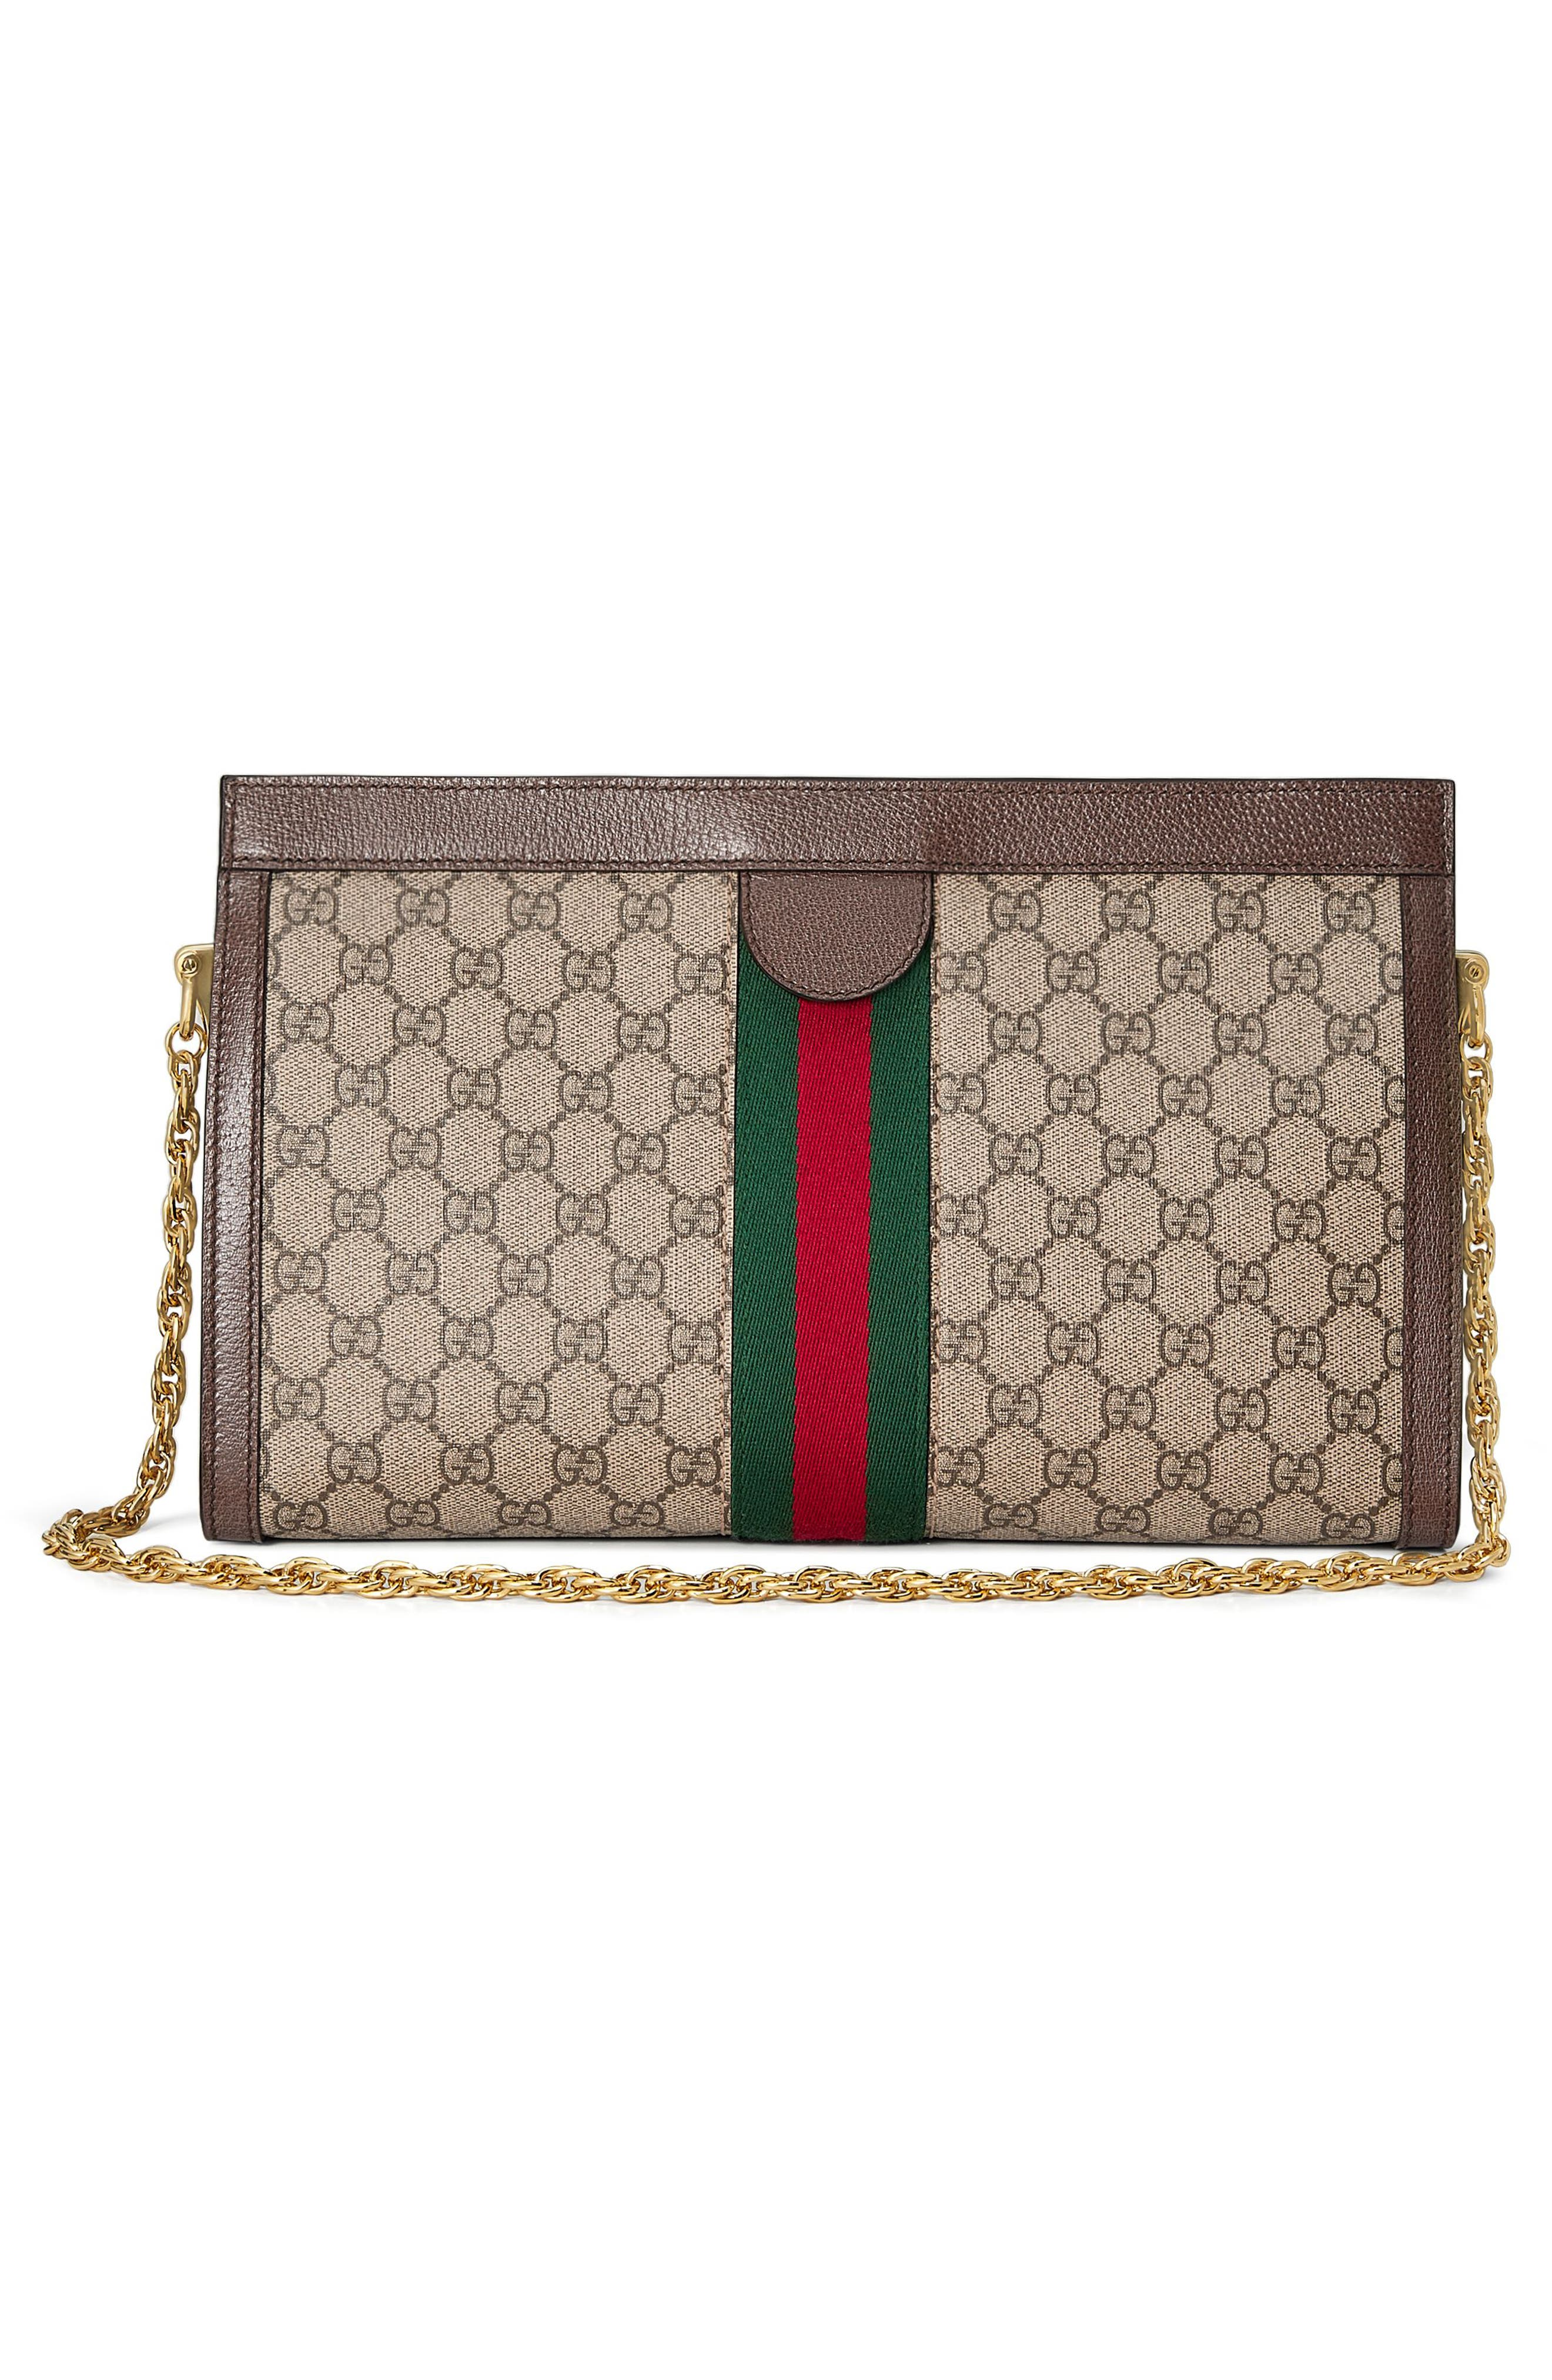 GUCCI, GG Supreme Canvas Shoulder Bag, Alternate thumbnail 2, color, BEIGE EBONY/ NERO/ VERT/ RED